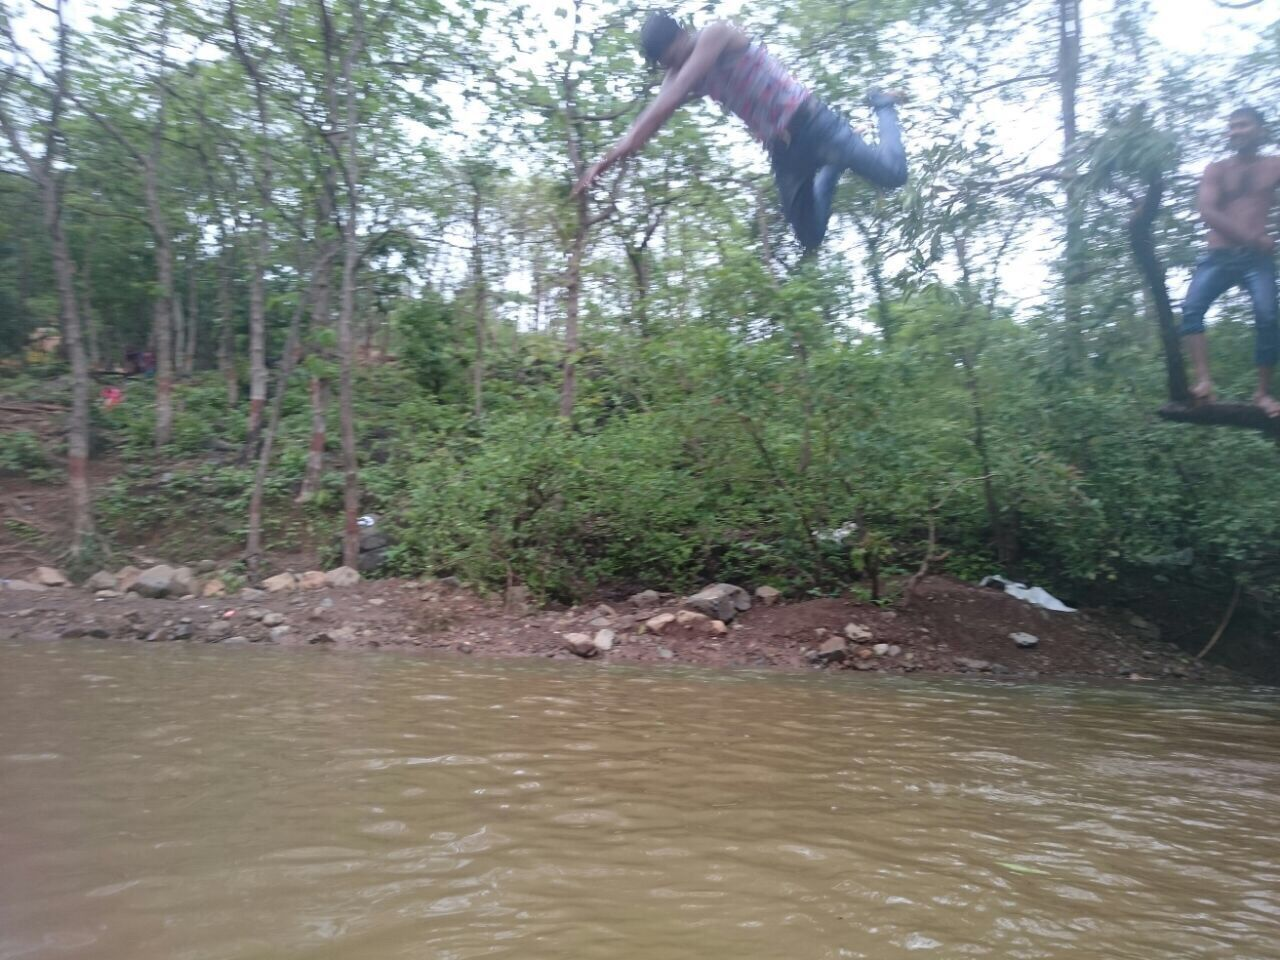 water, tree, river, day, nature, outdoors, forest, one person, jumping, full length, people